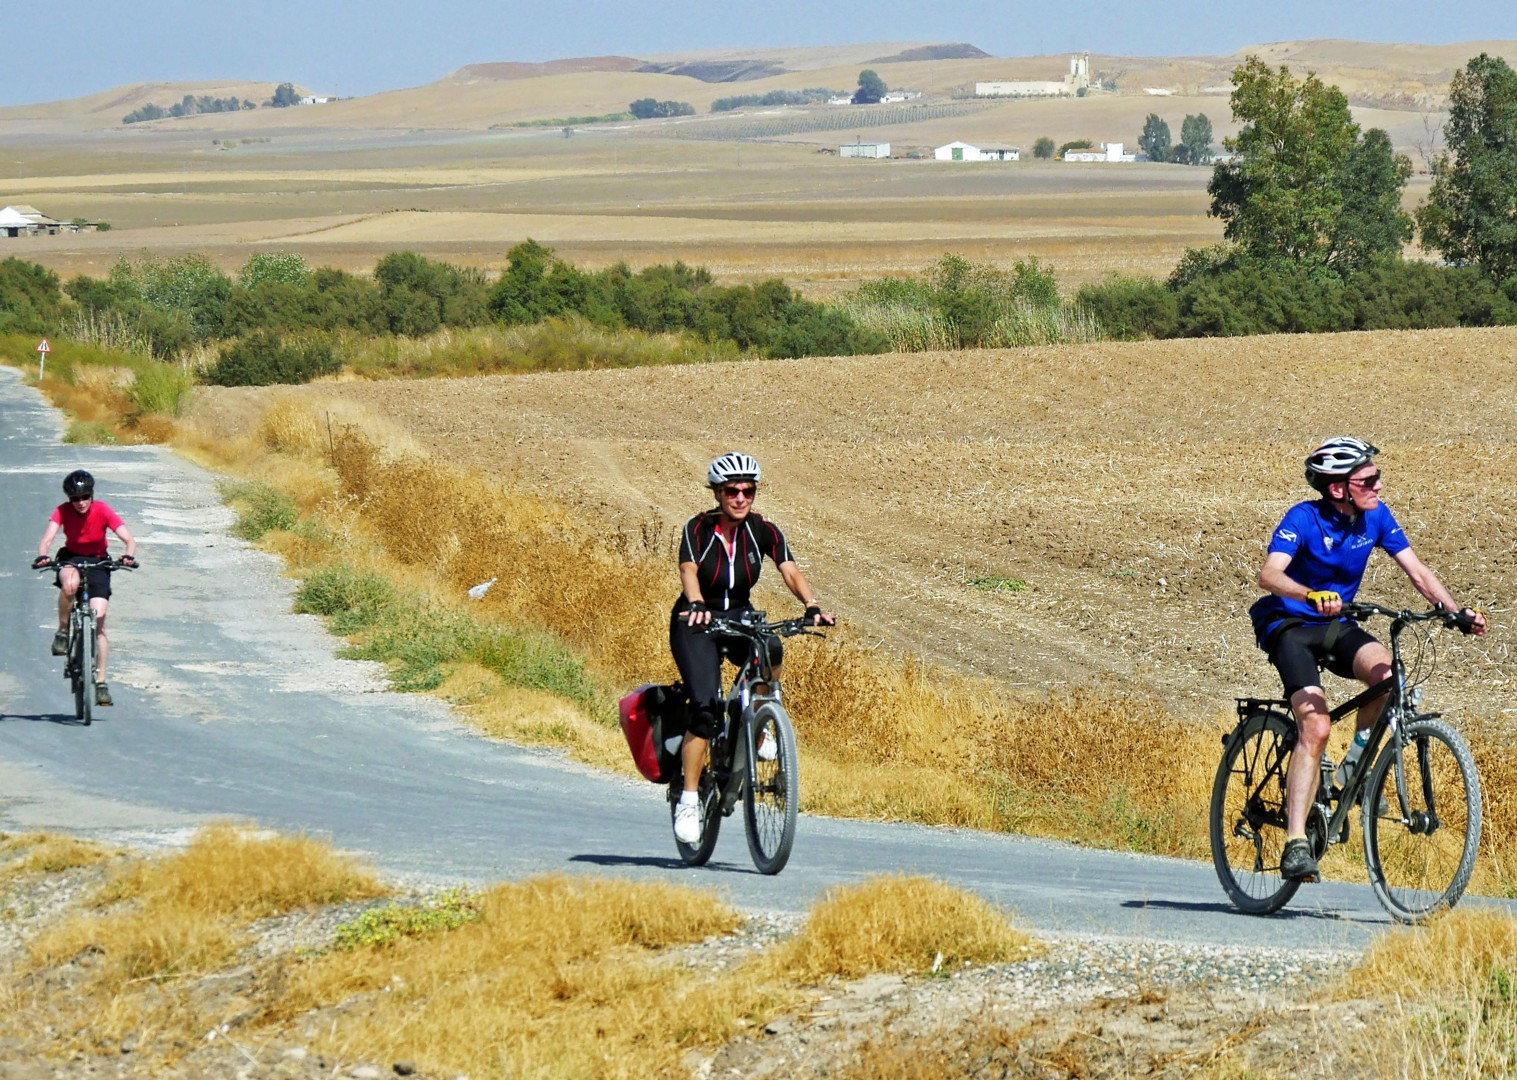 spain-granada-to-seville-guided-leisure-cycling-holiday.jpg - Spain - Granada to Seville - Leisure Cycling